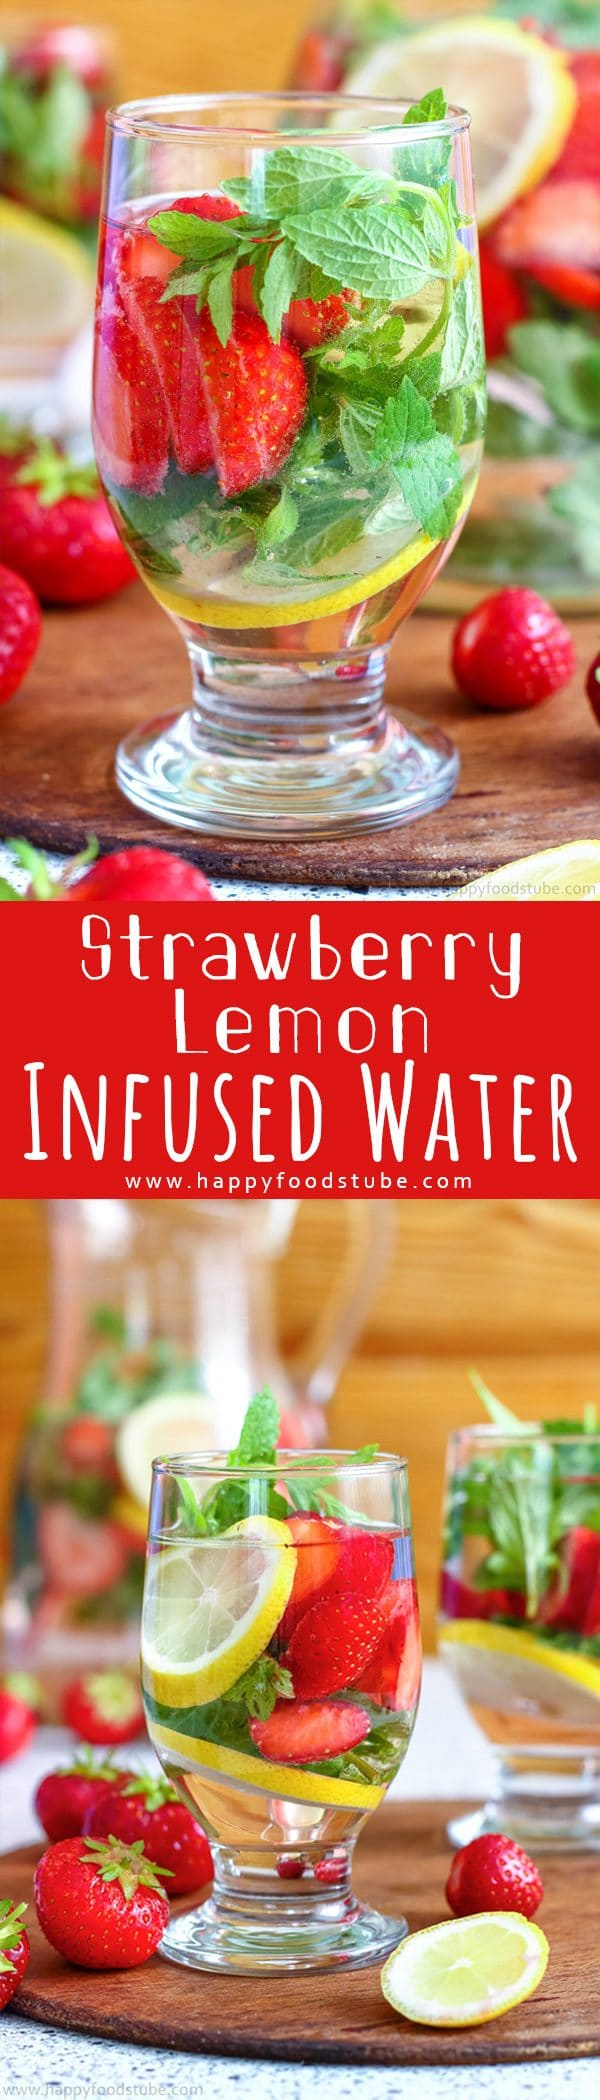 Strawberry Lemon Infused Water Recipe Picture